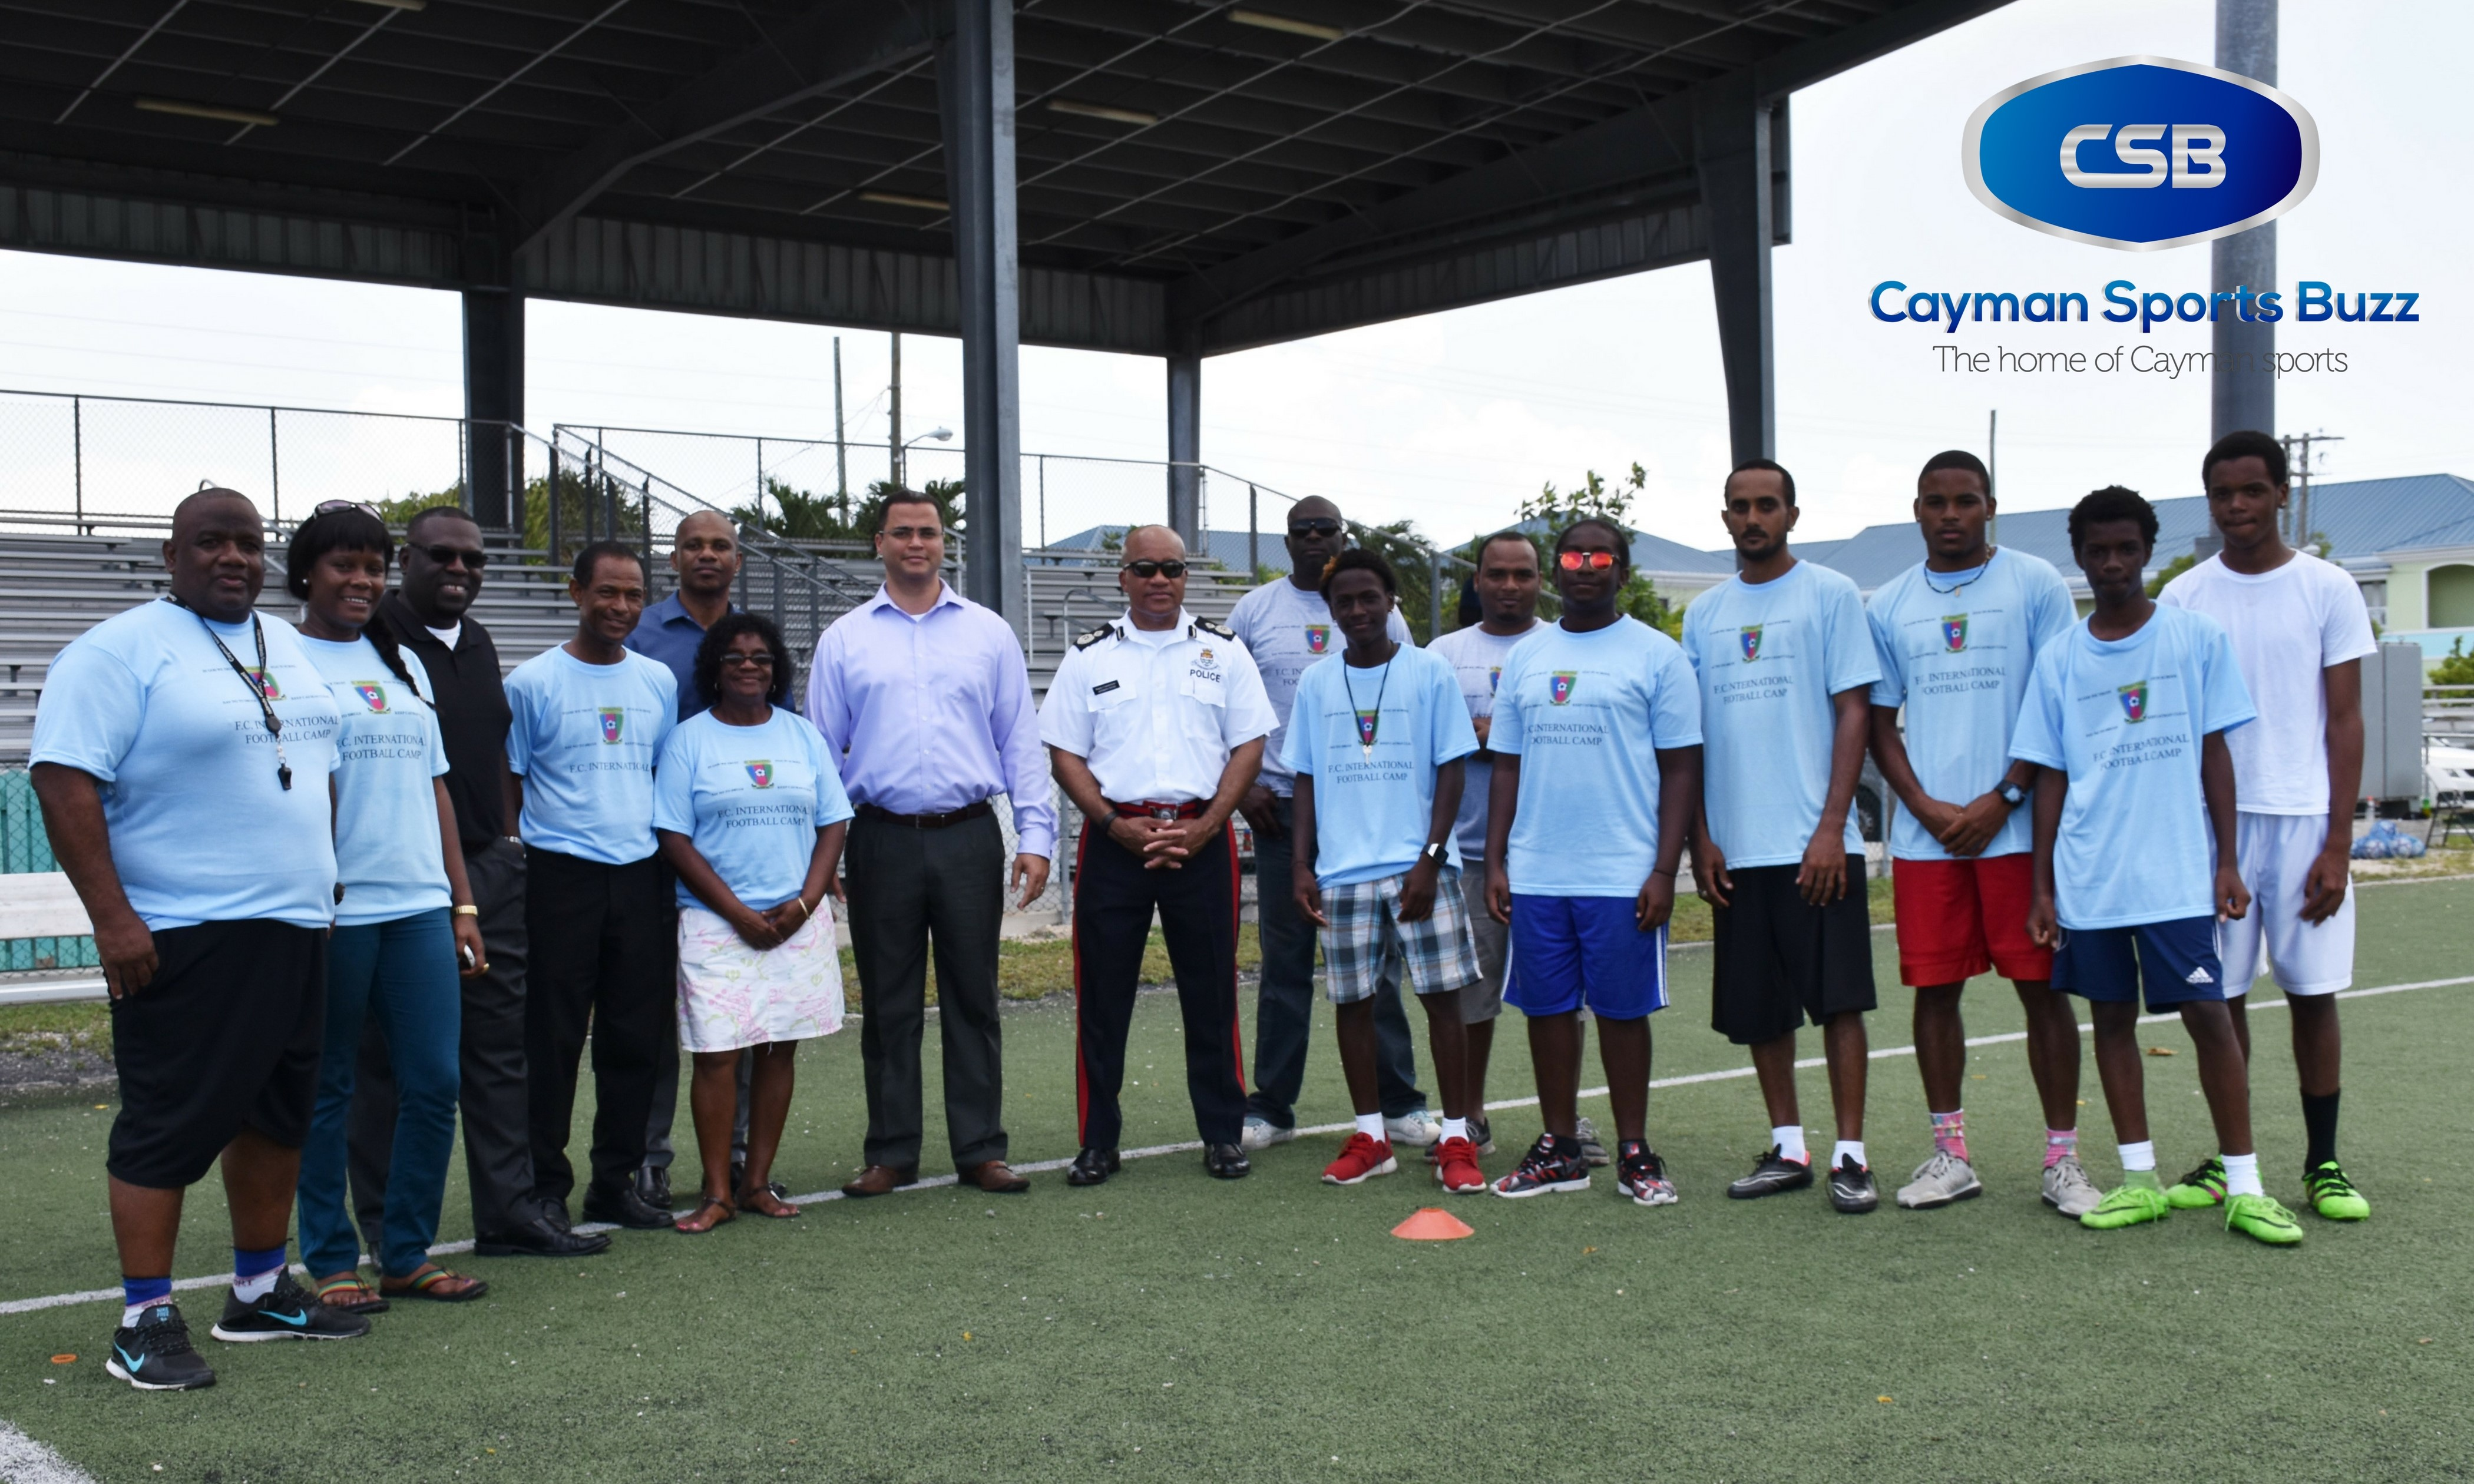 FC International President Kennedy Ebanks (4th from left) with volunteers and guests.